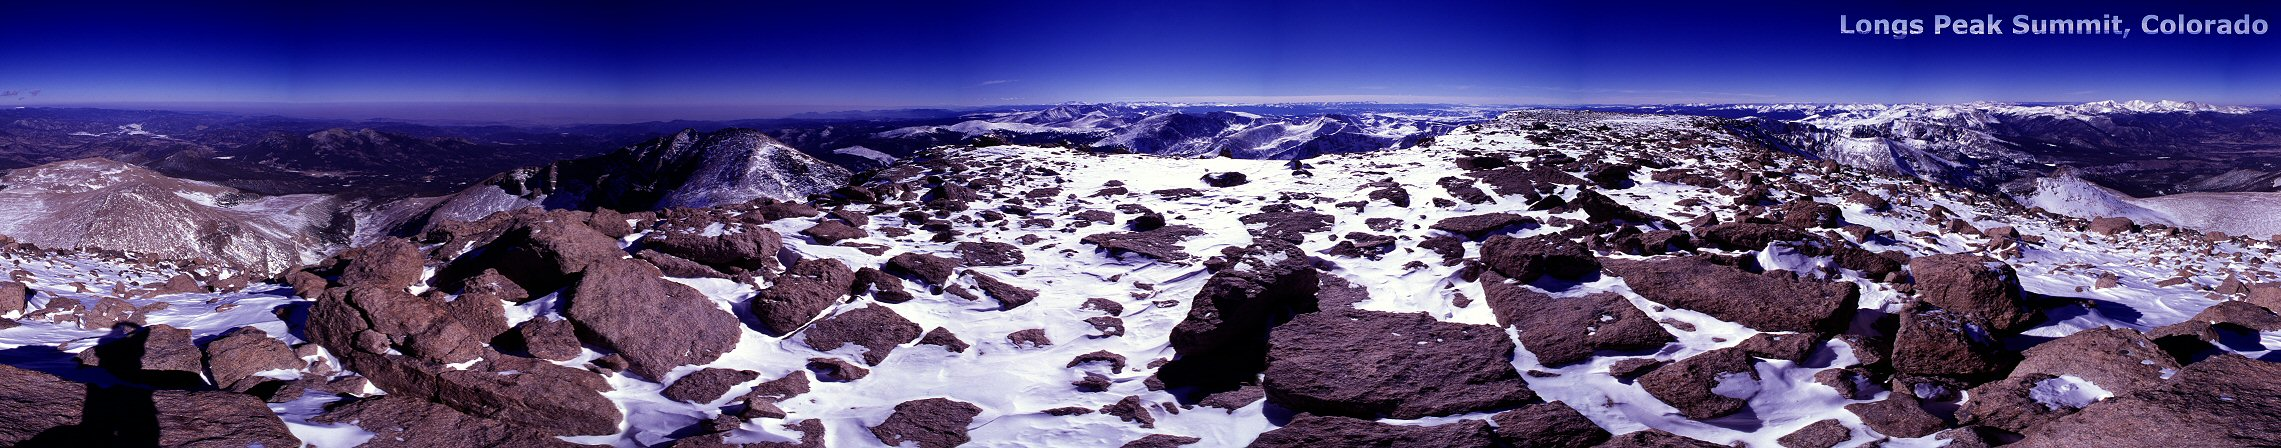 360 degree panorama from the summit of Longs Peak, 2001